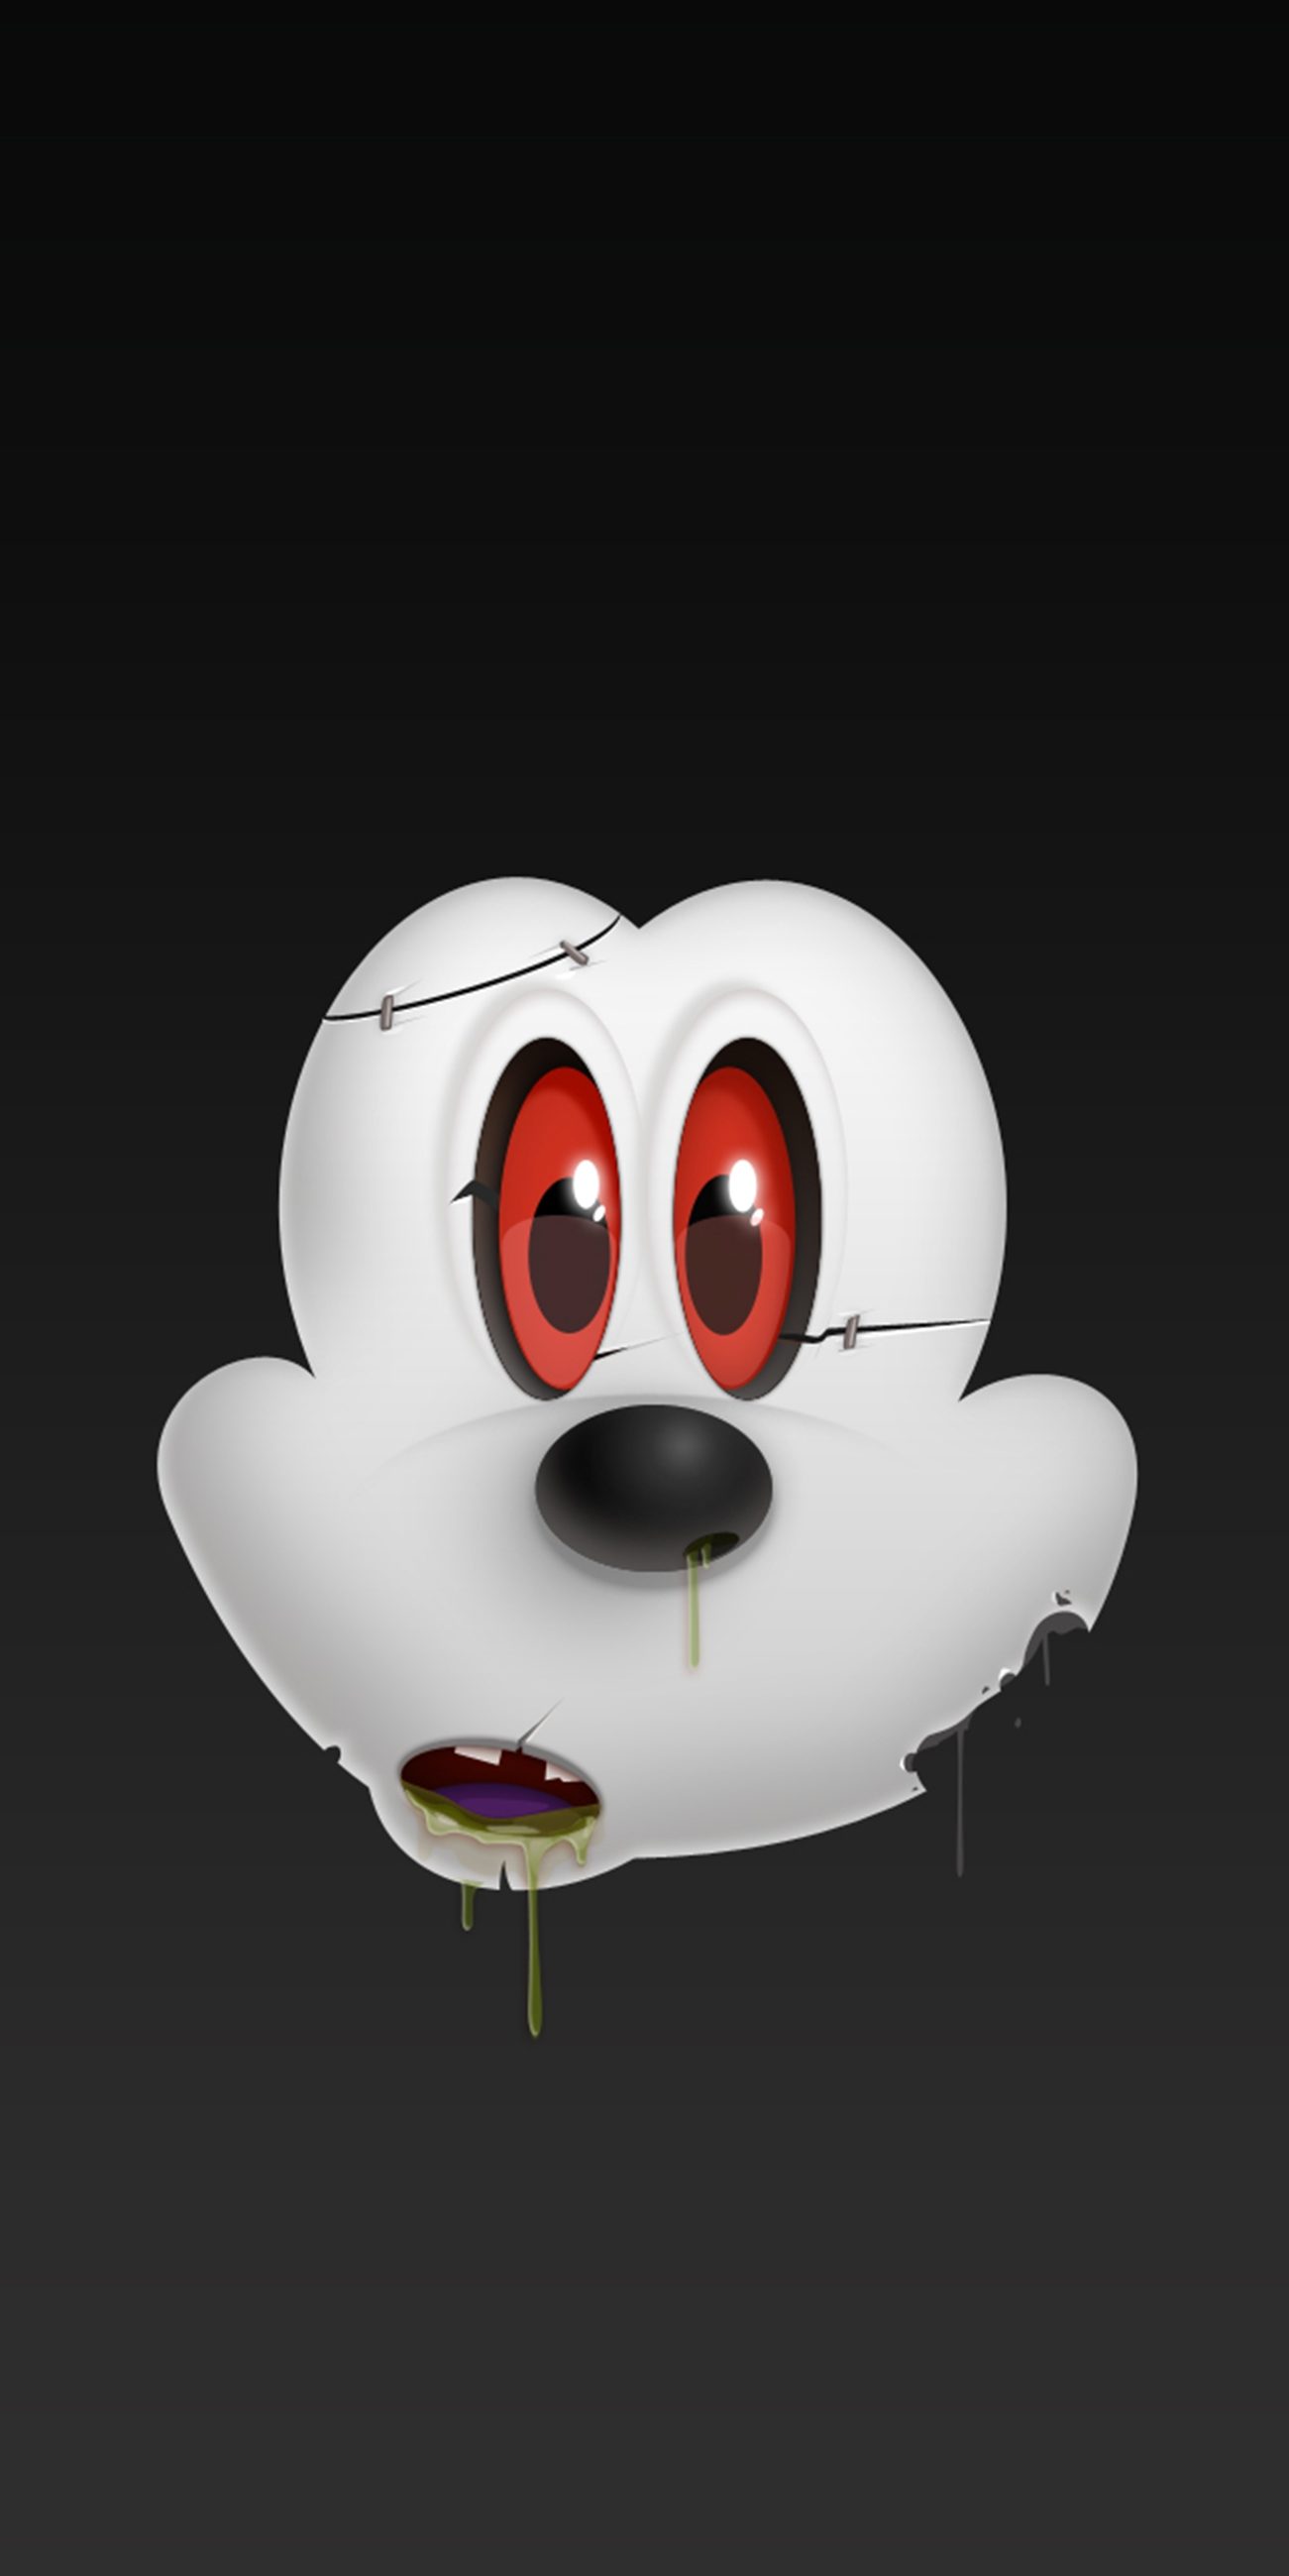 Mouse Wallpaper Cute Halloween Mickey Mouse Iphone Wallpaper Iphone Wallpapers